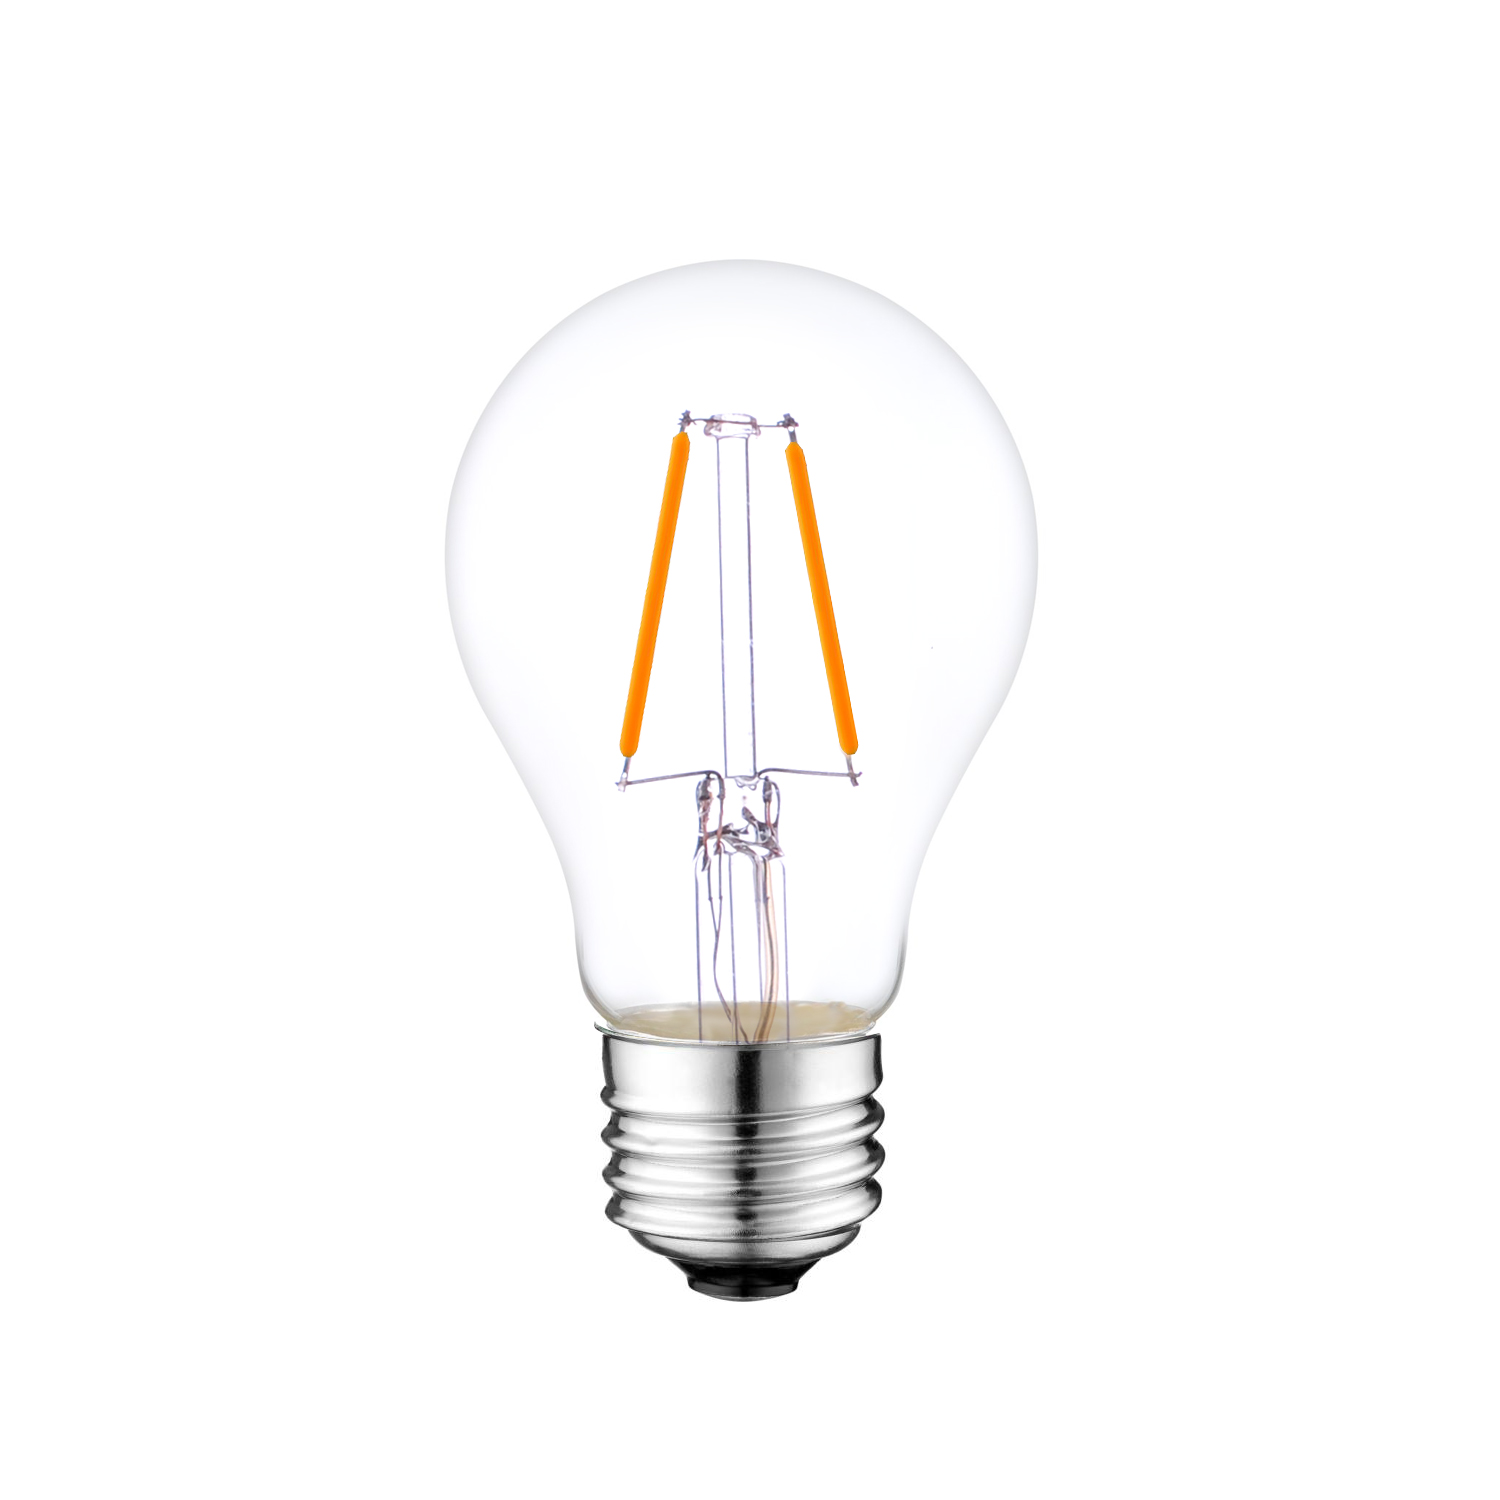 Medium Base E26 A17 LED Filament bulbs